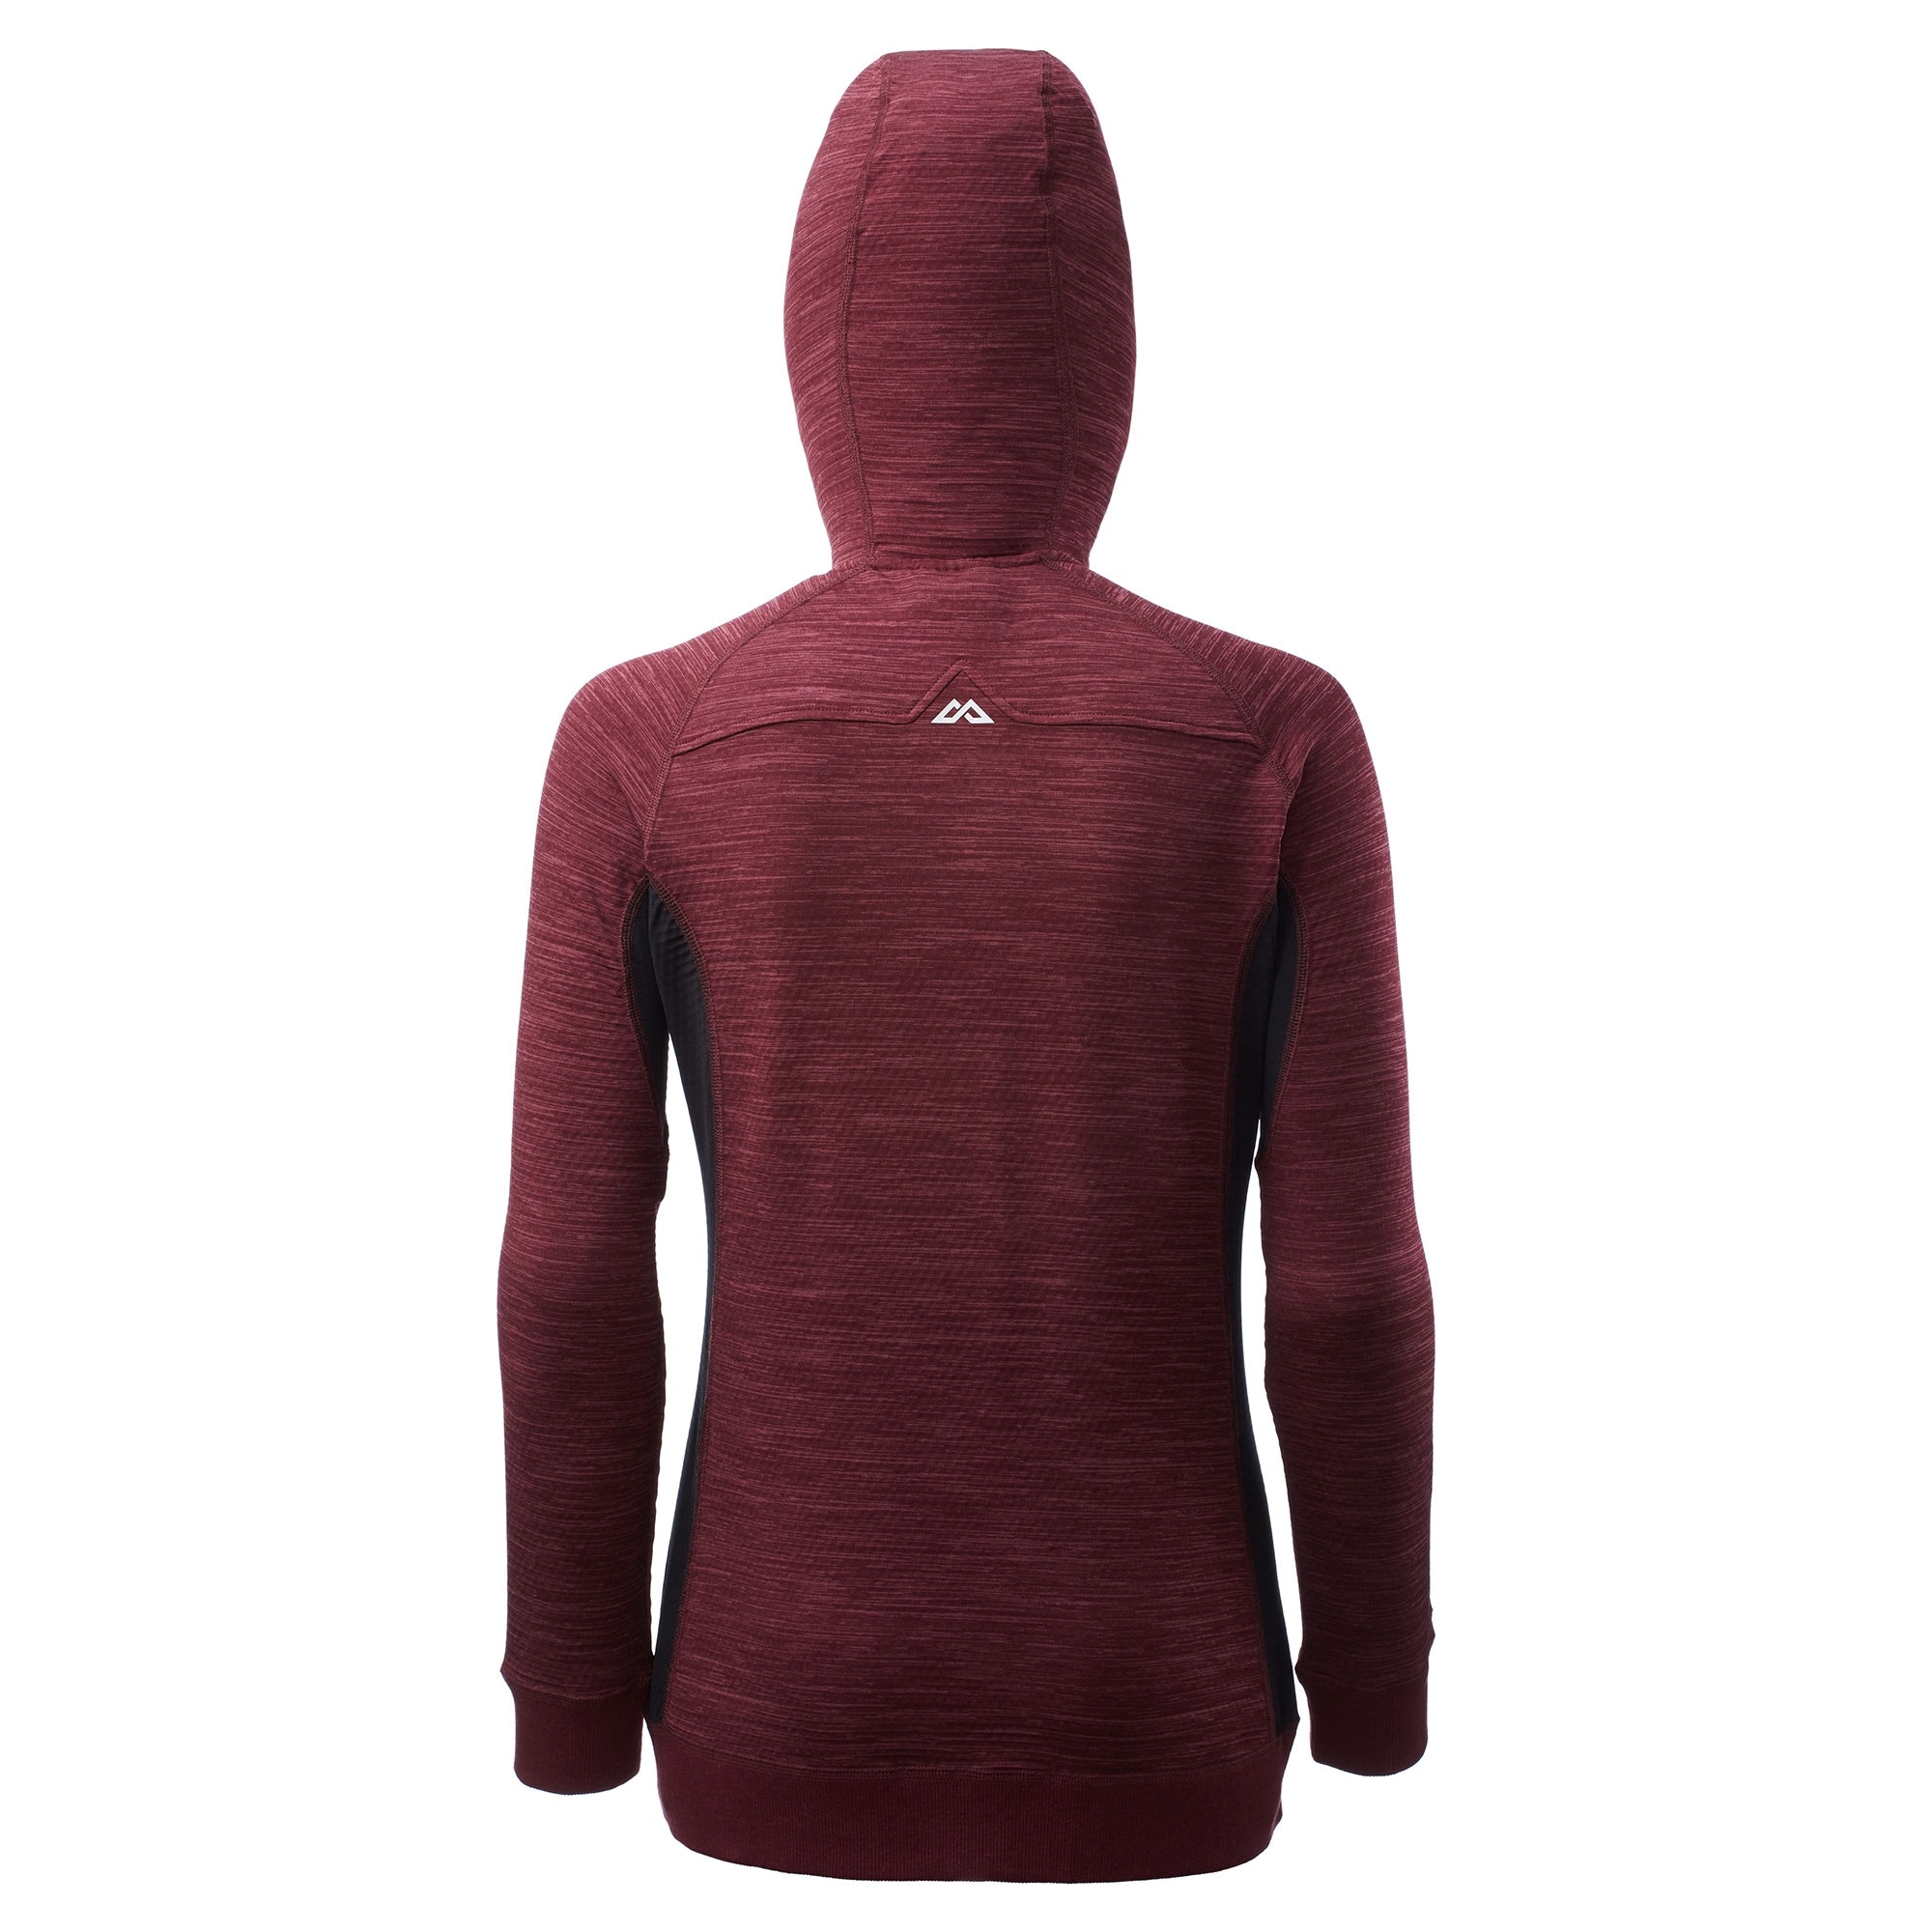 NEW-Kathmandu-Acota-Women-s-Hooded-Fleece-Lightweight-Breathable-Outdoor-Jacket thumbnail 17